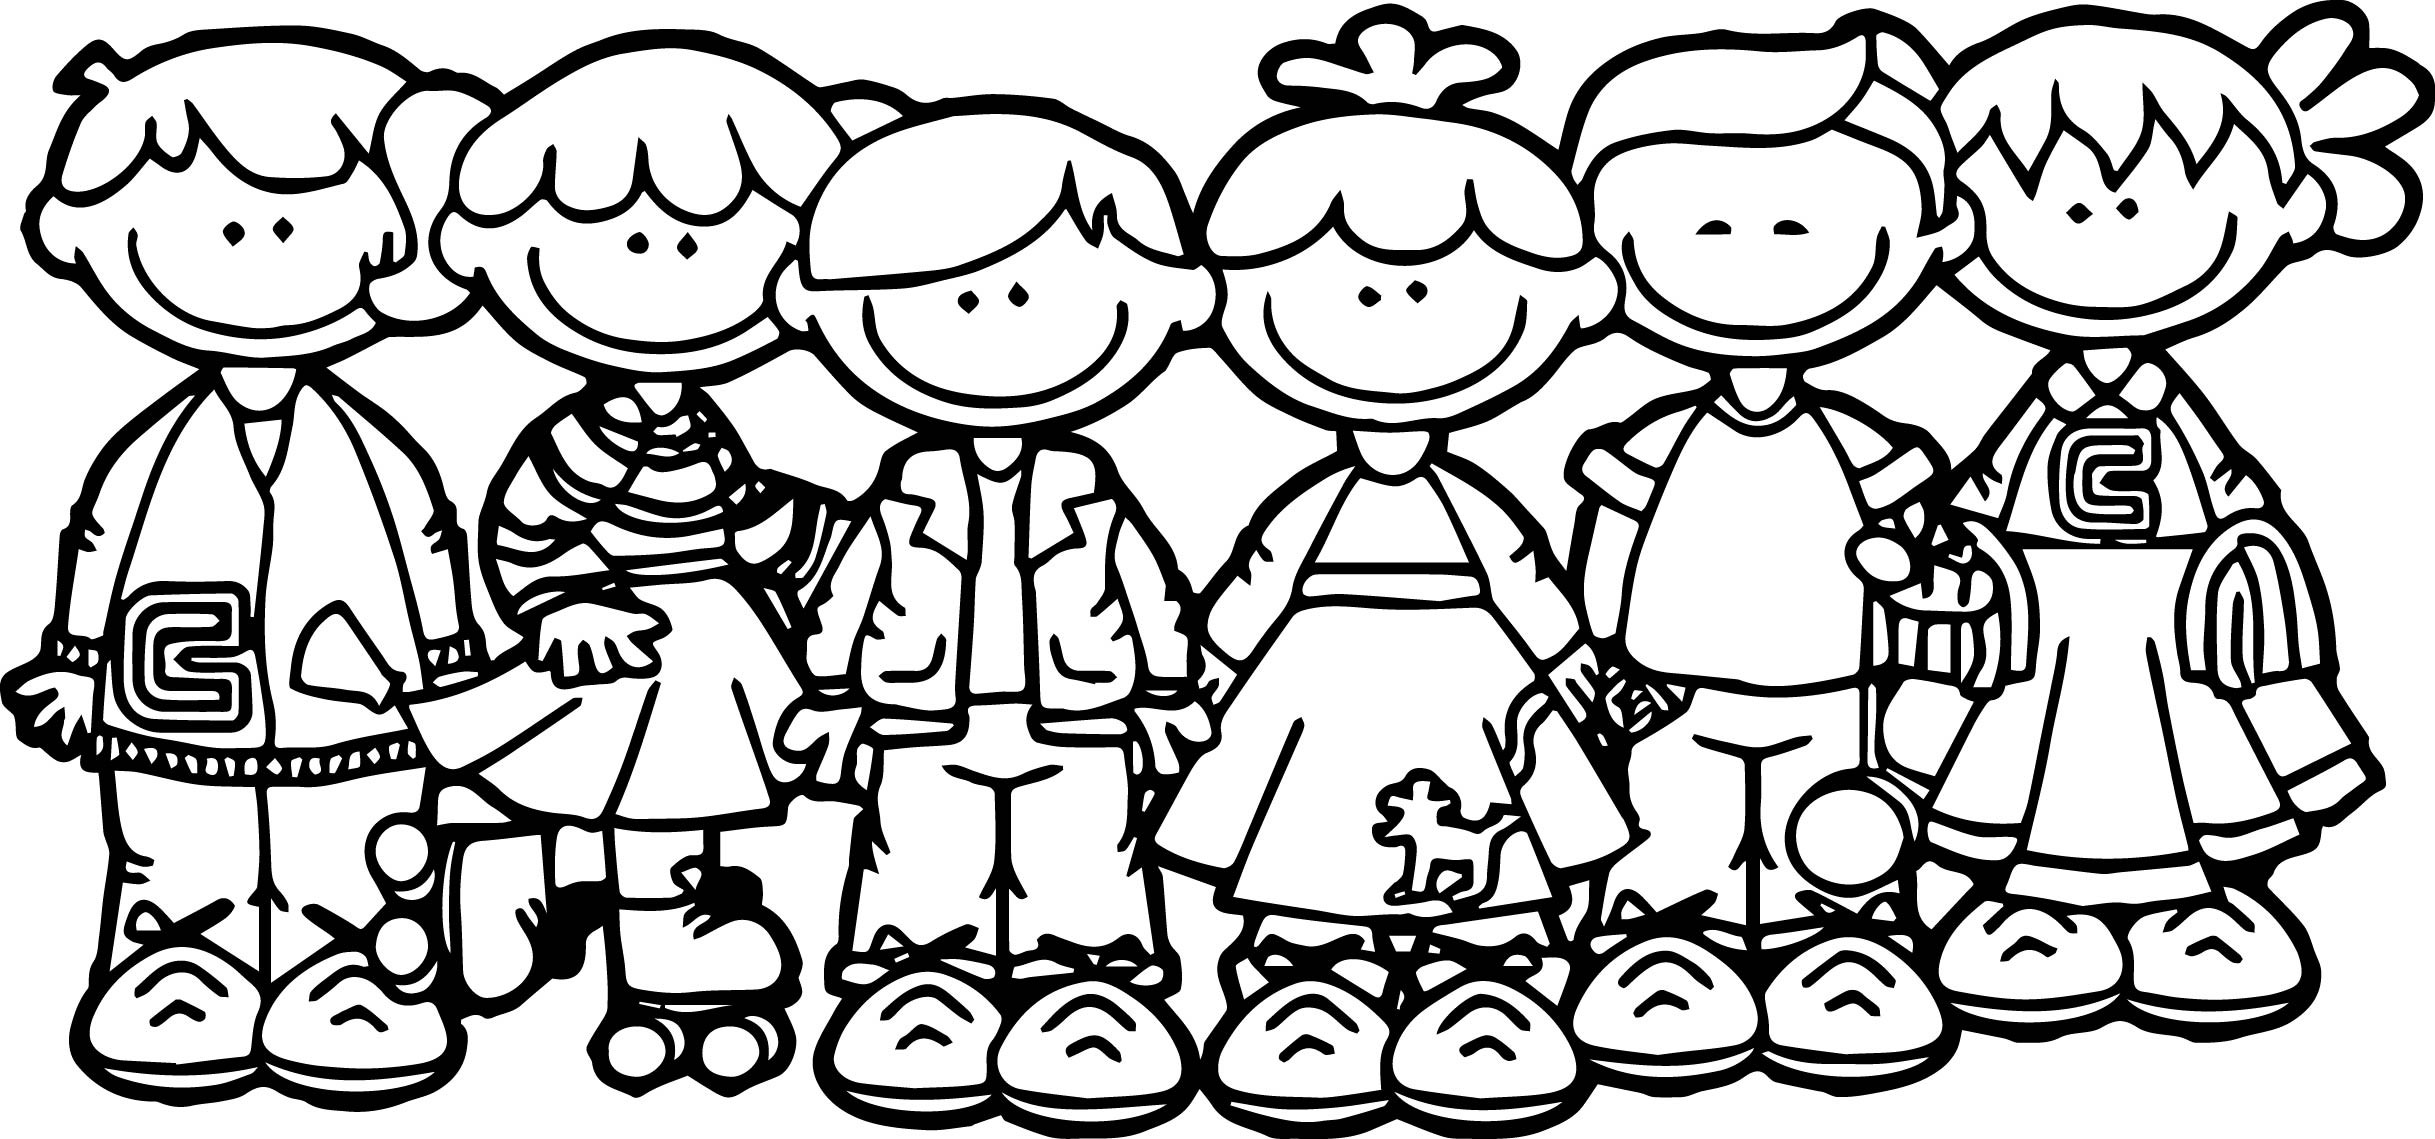 School Kids Coloring Pages At Getdrawings